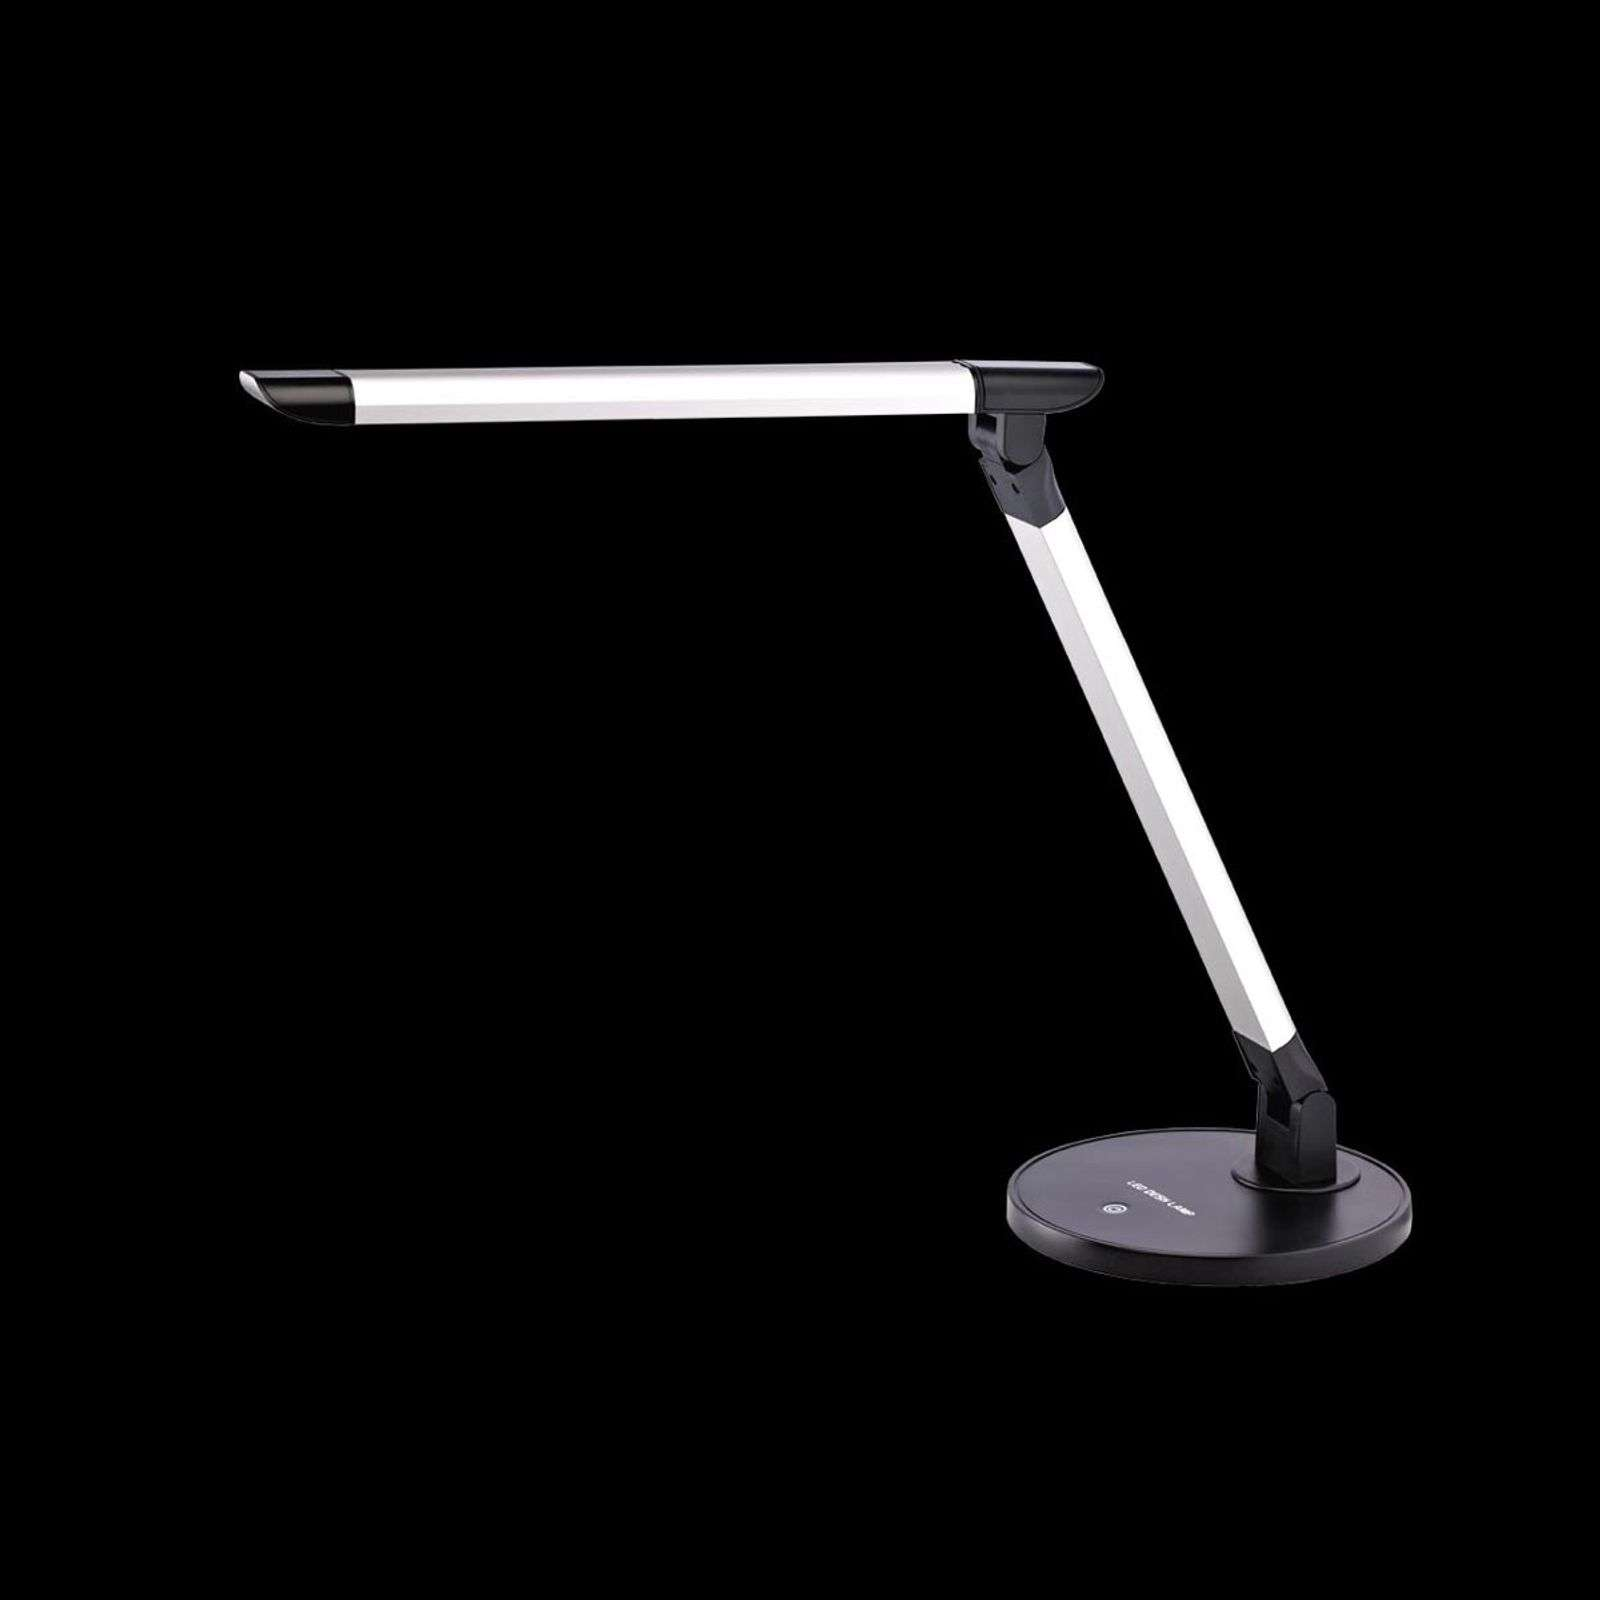 Lampe à poser LED pliable Chris à int variable